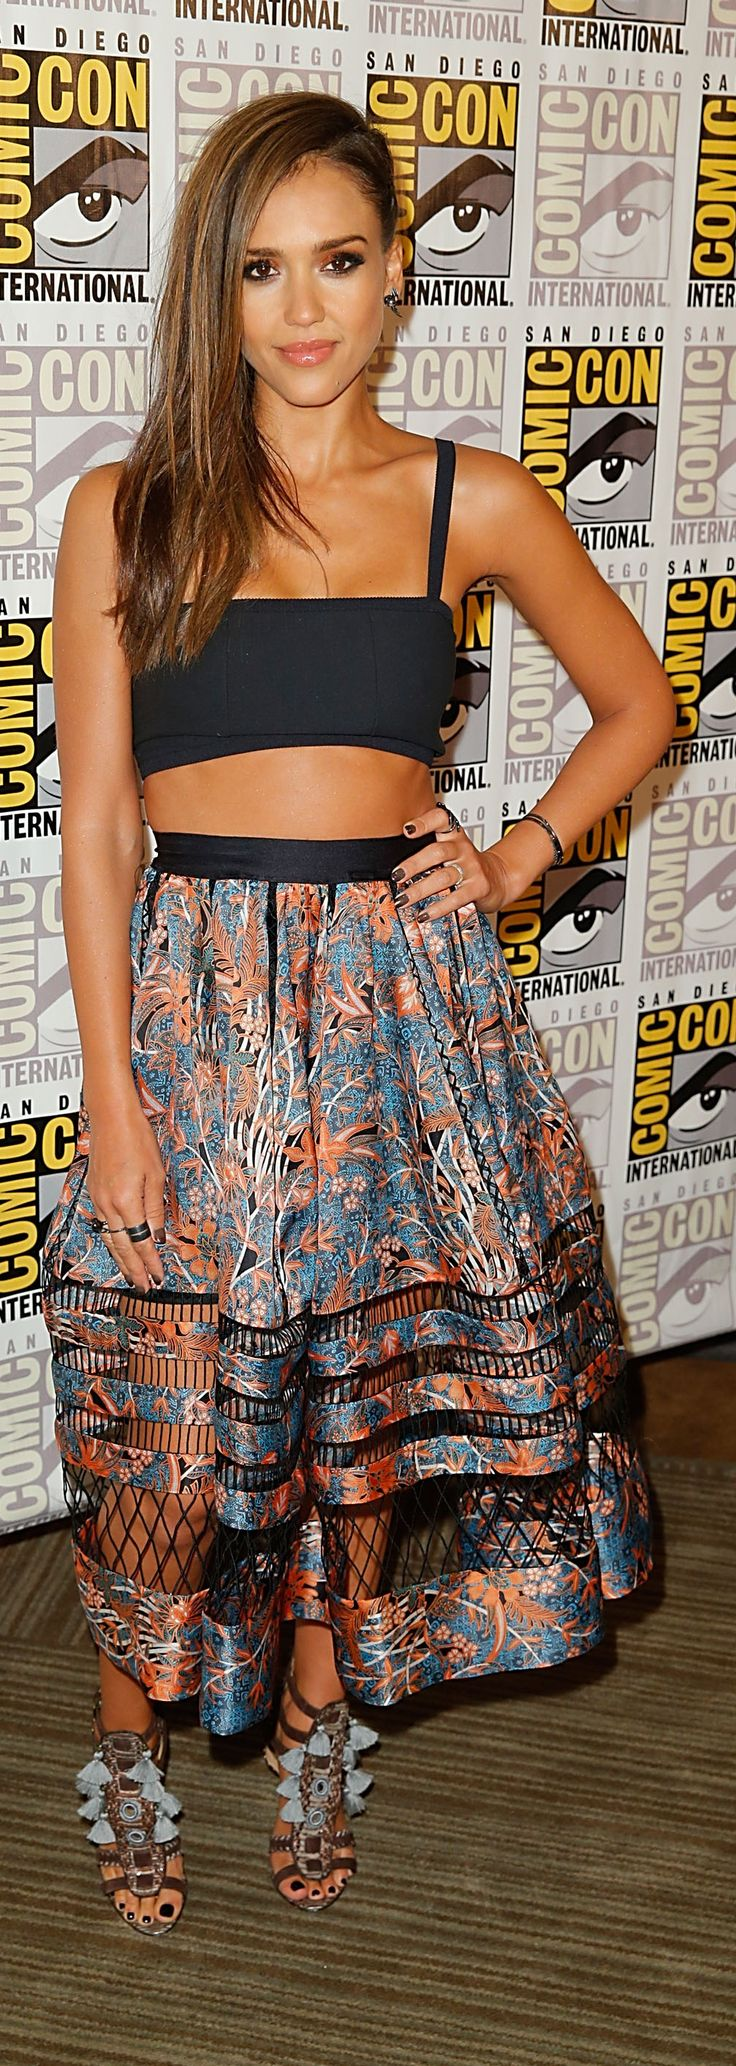 Jessica Alba in Zimmerman at Comic-Con. cropped Tanya Taylor bandeau top and flowing cutout Zimmerman skirt